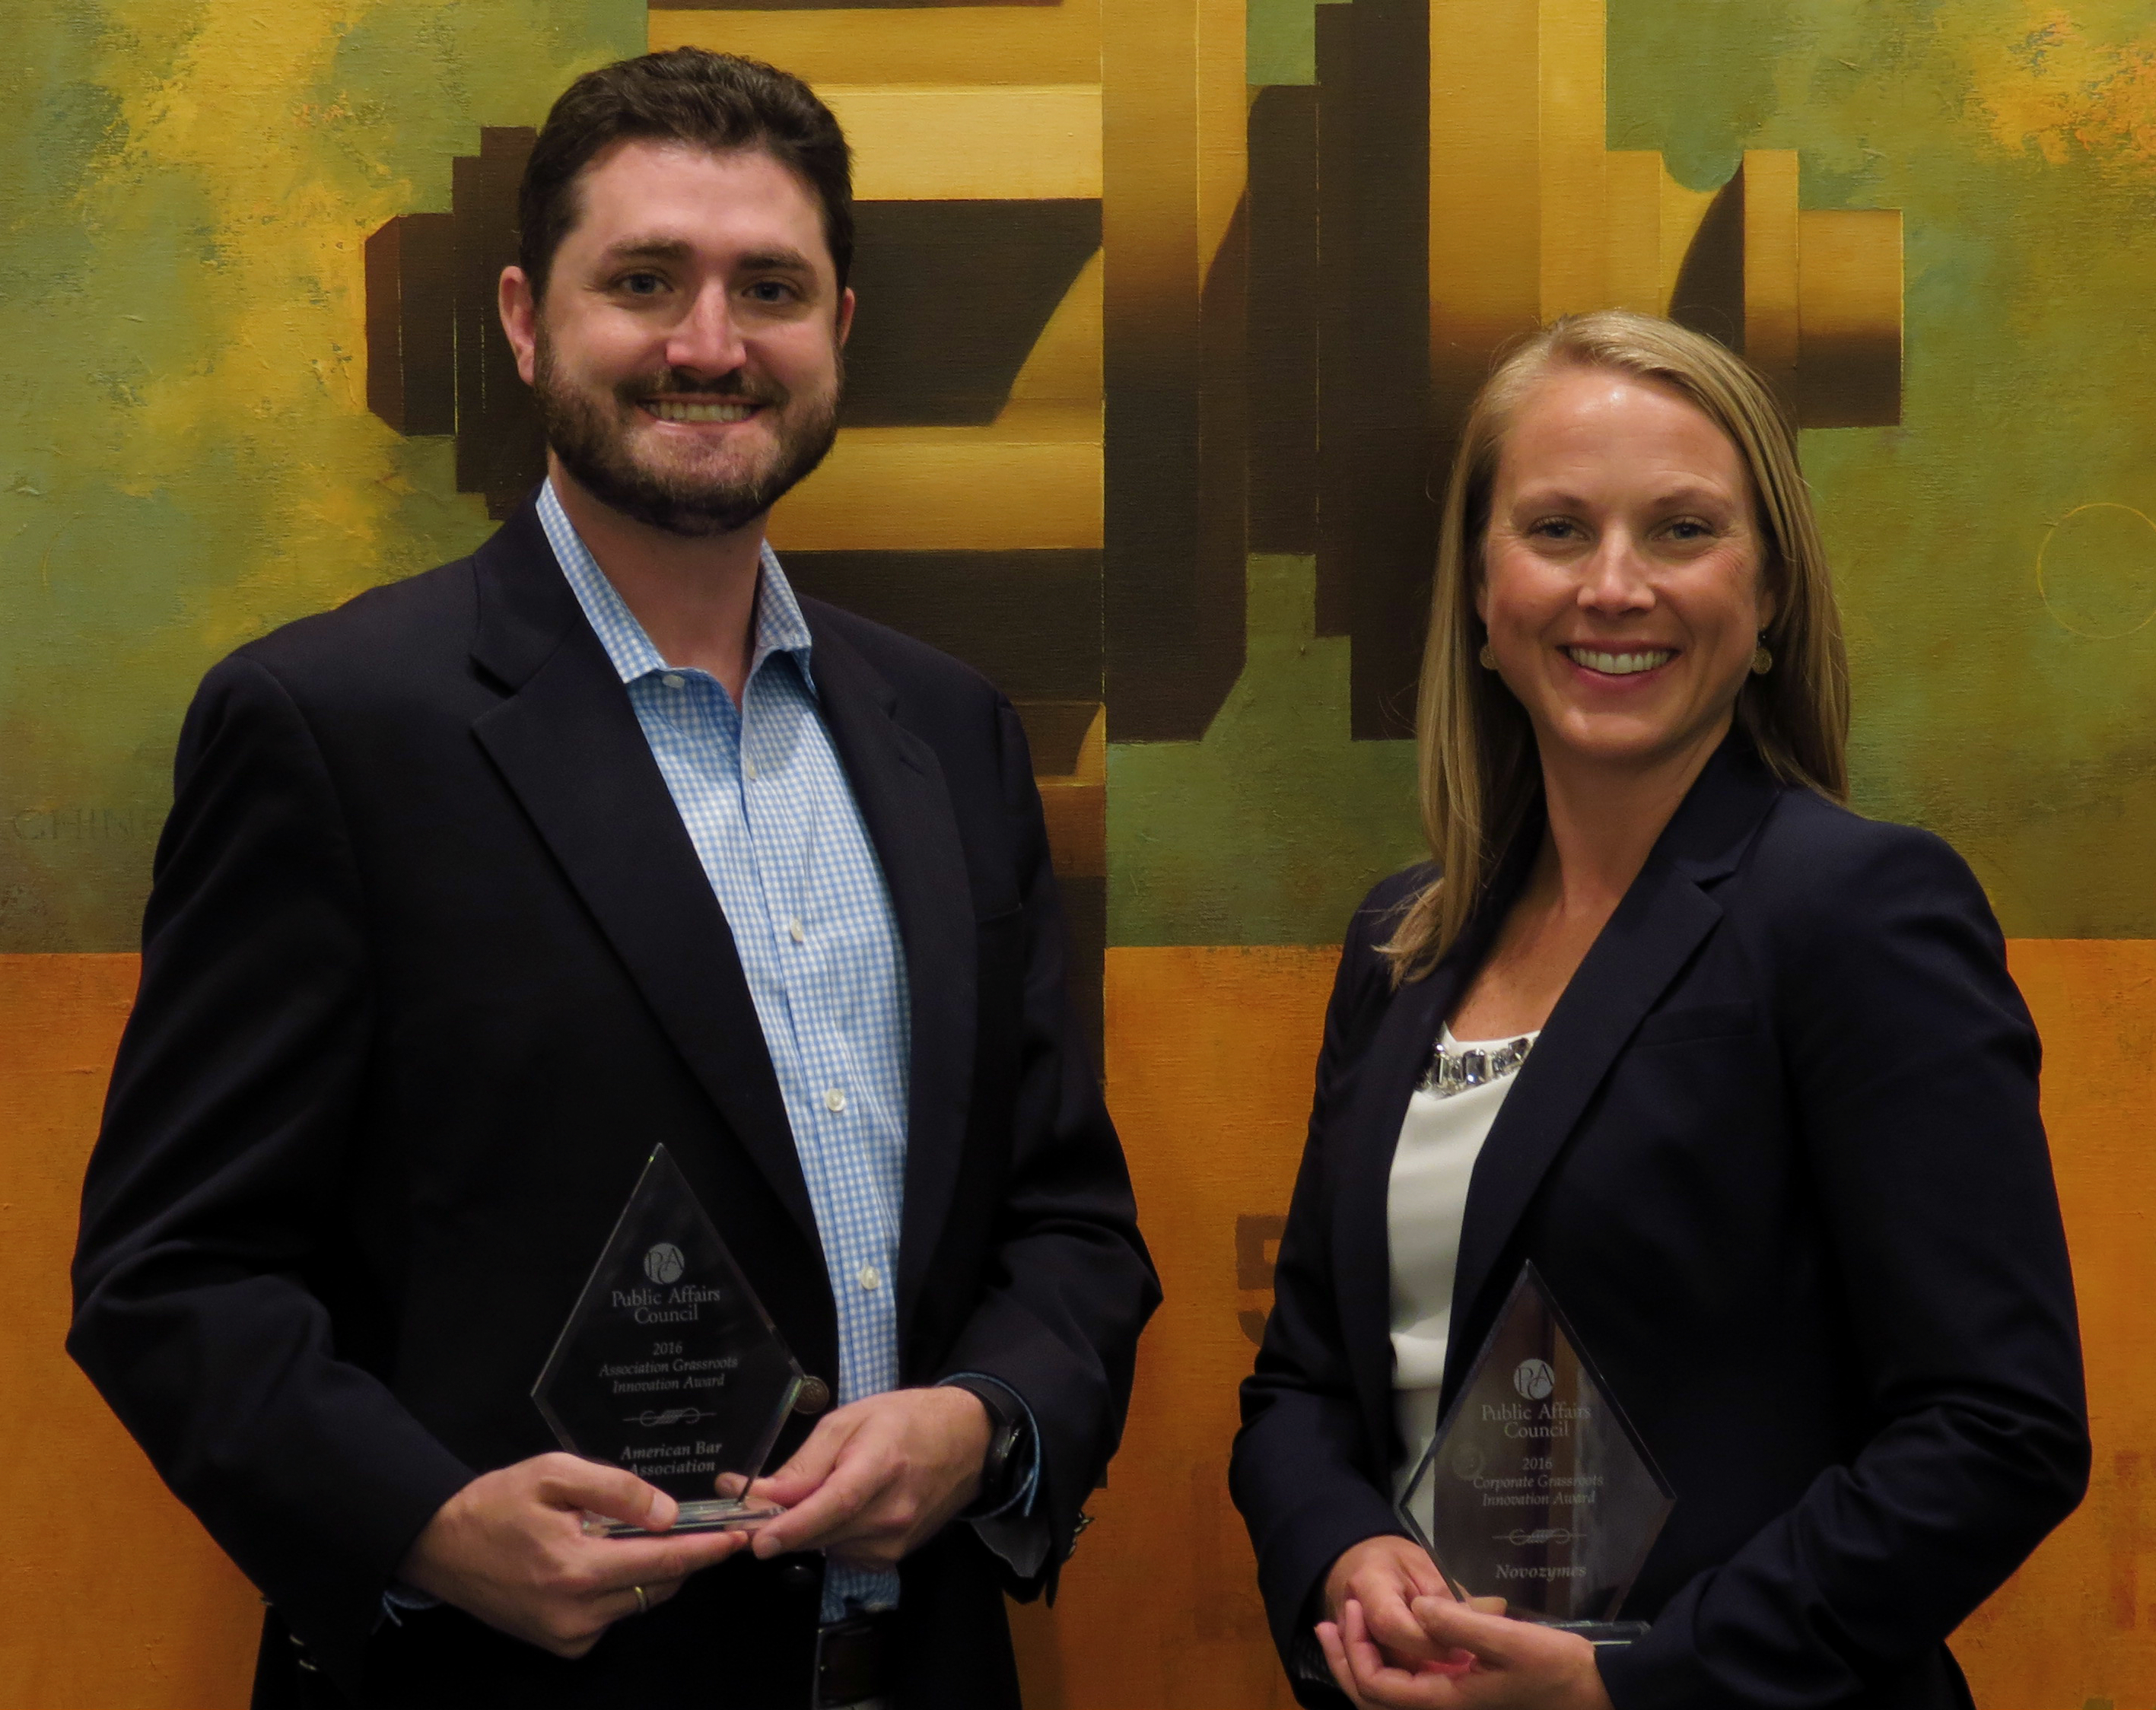 2016 Grassroots Innovation Award winners Jared Hess of the American Bar Association and Novozymes' Amy Davis